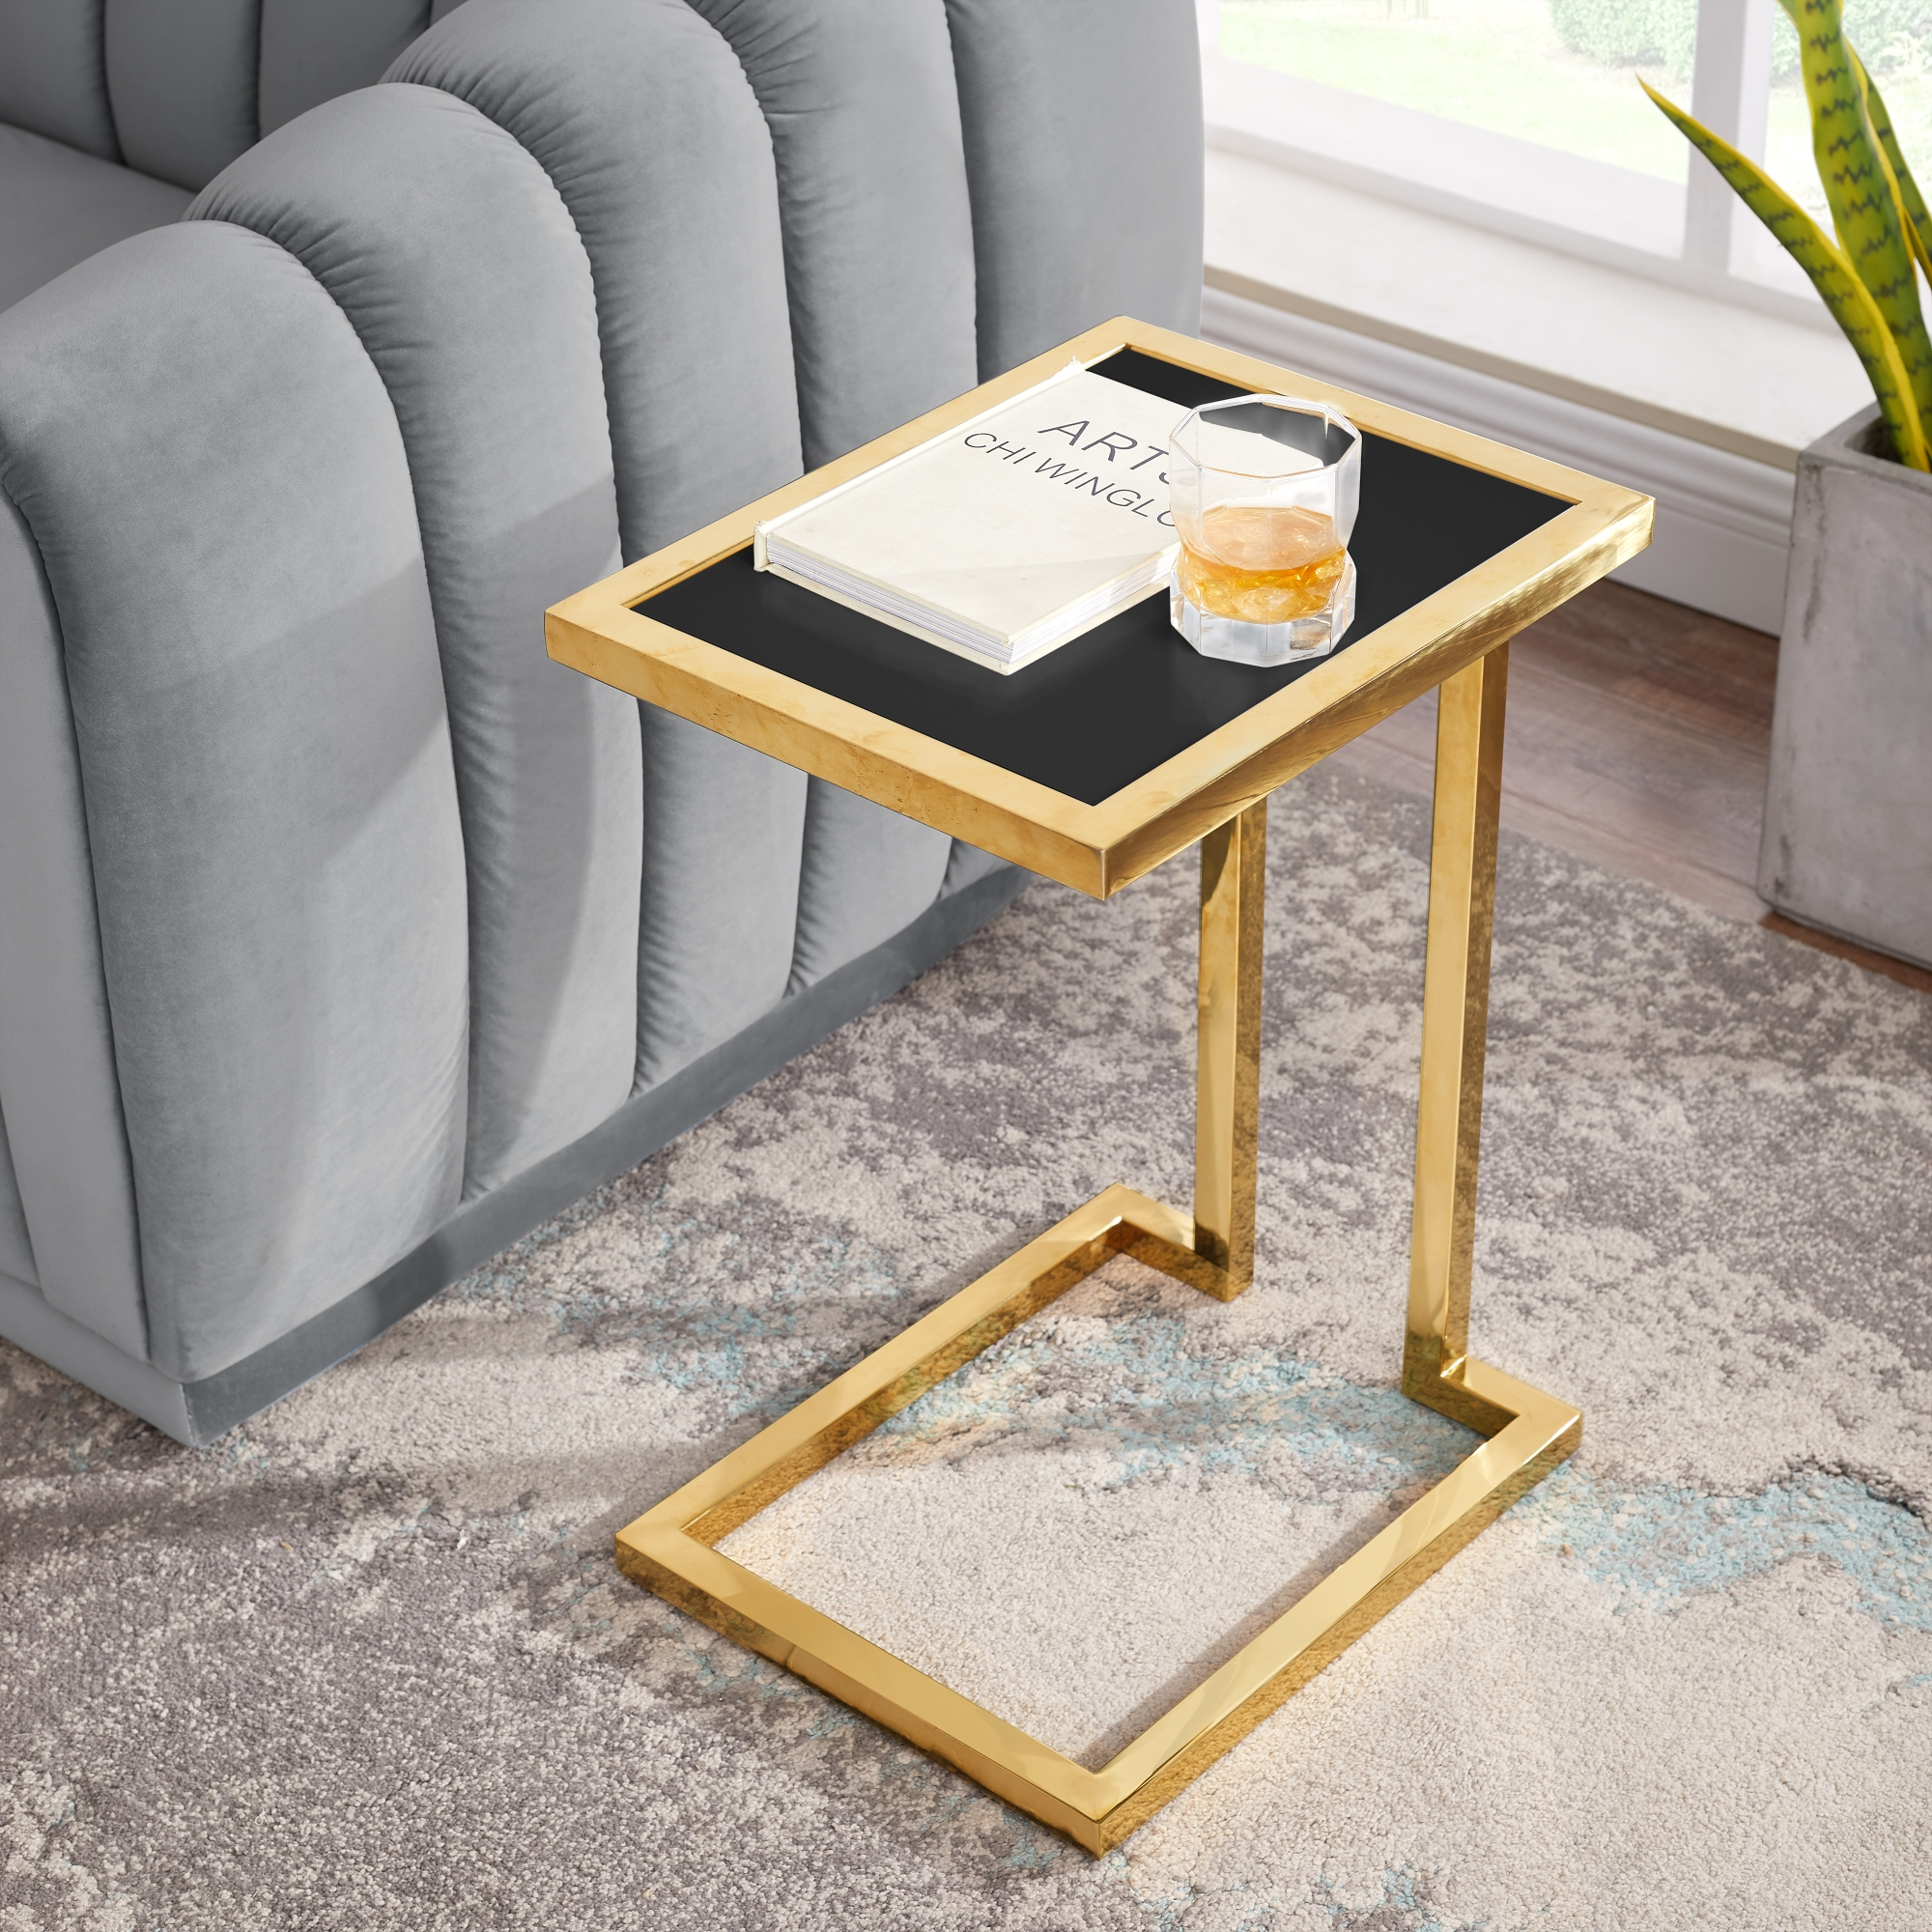 Inspired Home Black/Gold End Table Hight Gloss Lacquer Finish Top Polished Stainless Steel Base